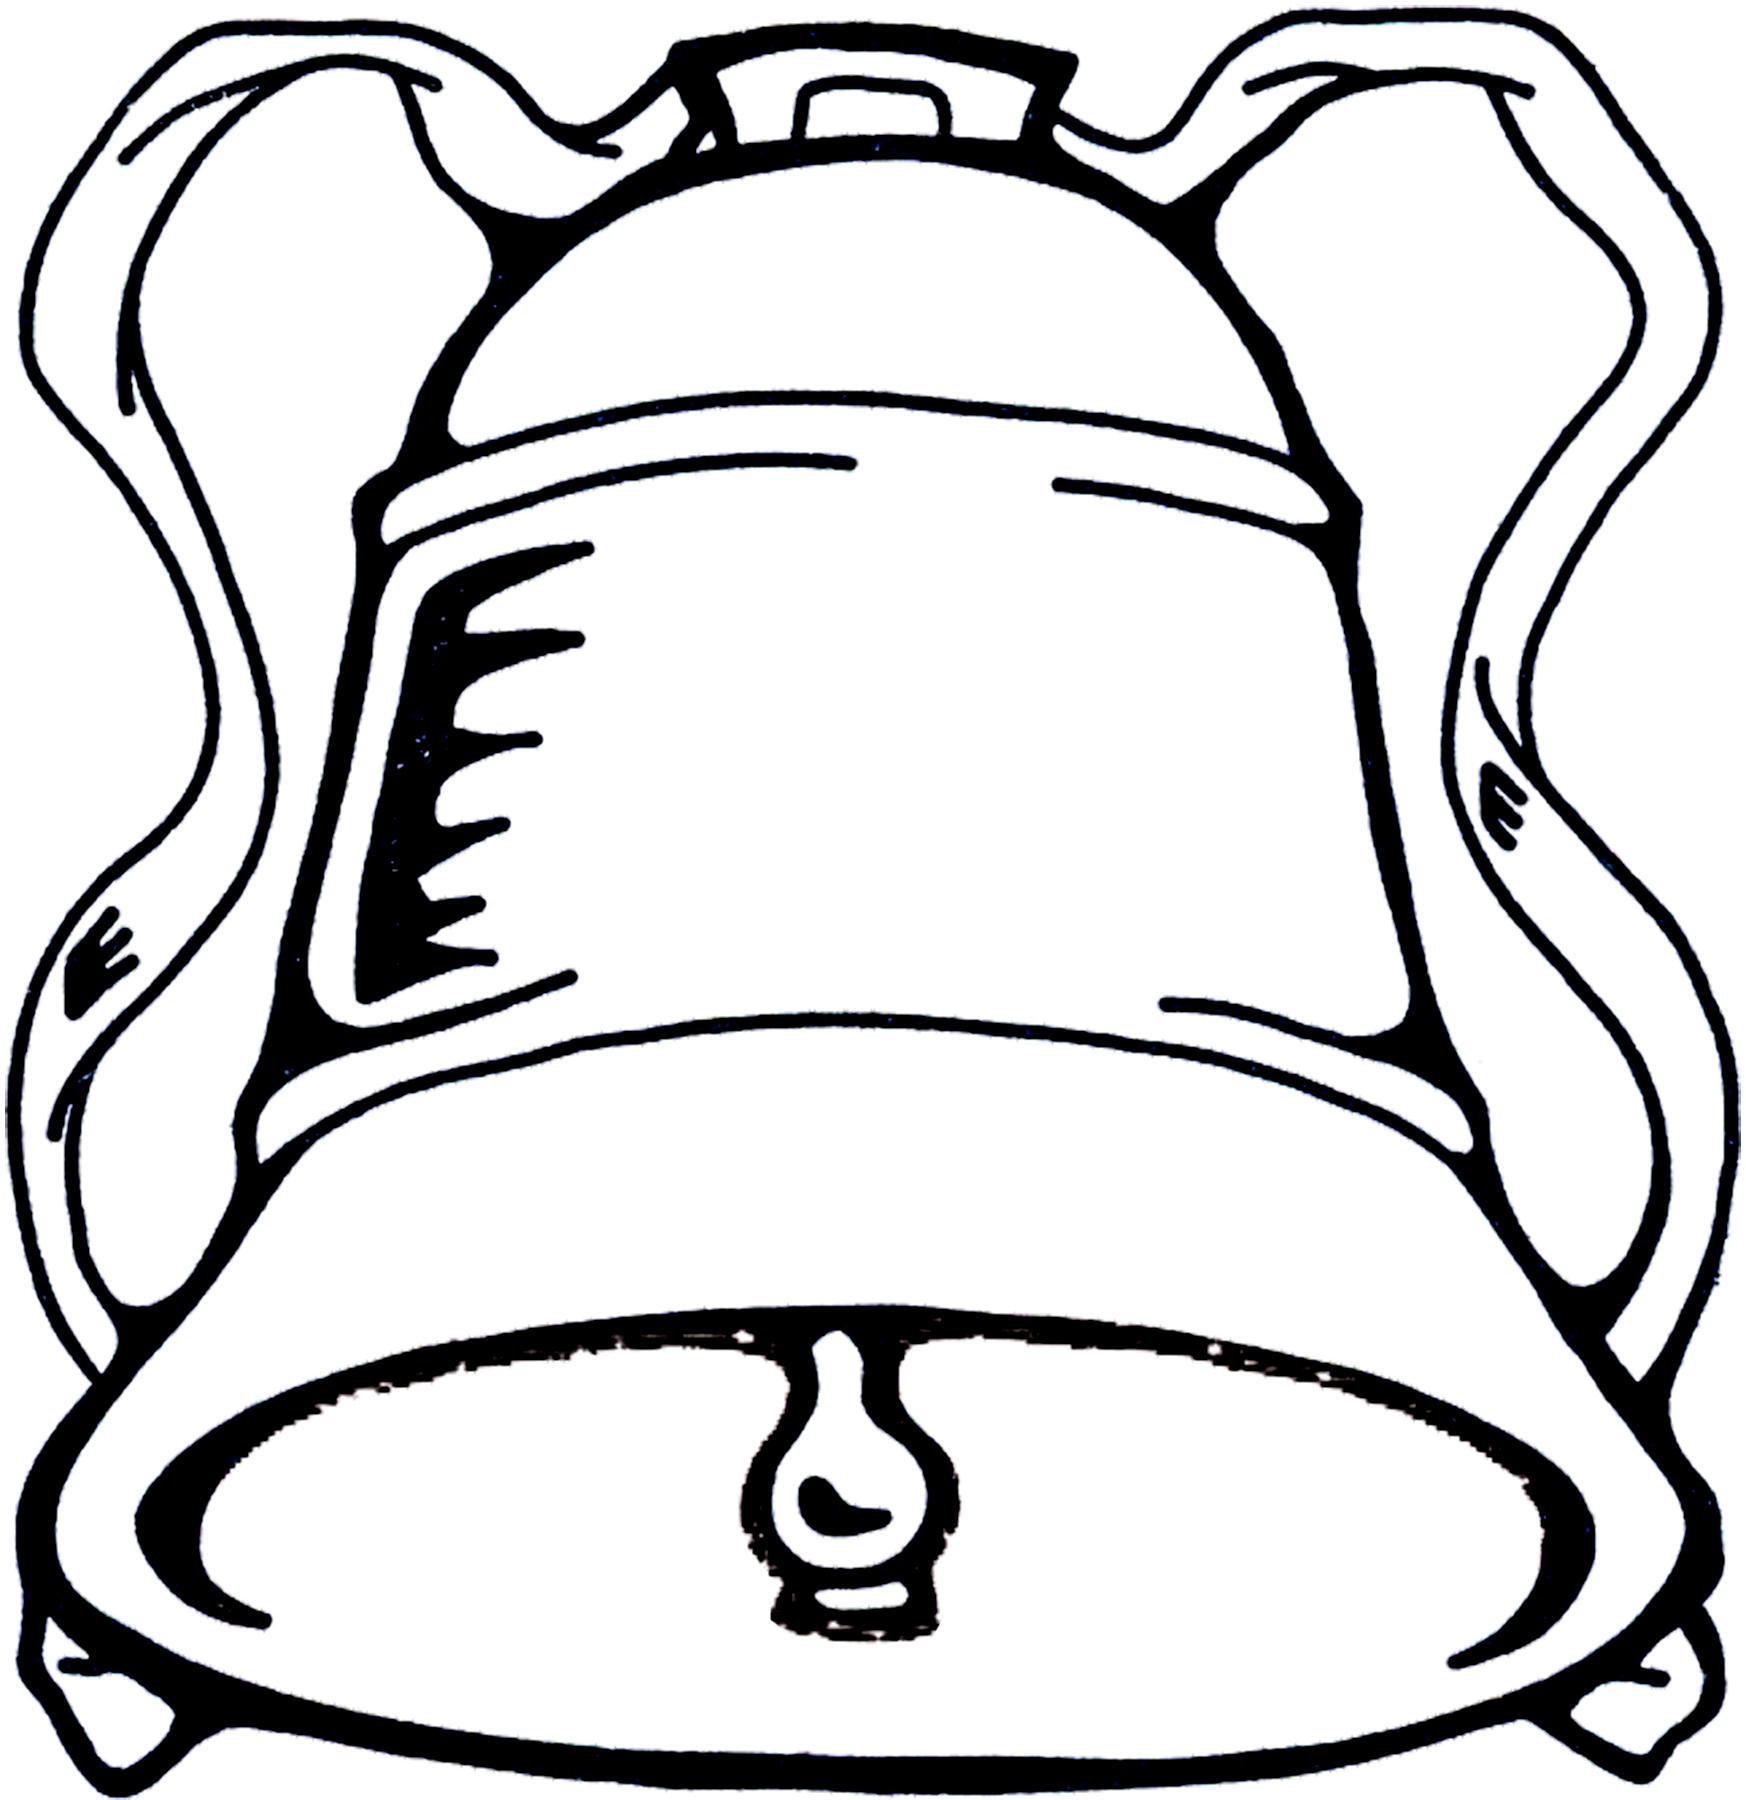 Christmas bell image the. Bells clipart black and white